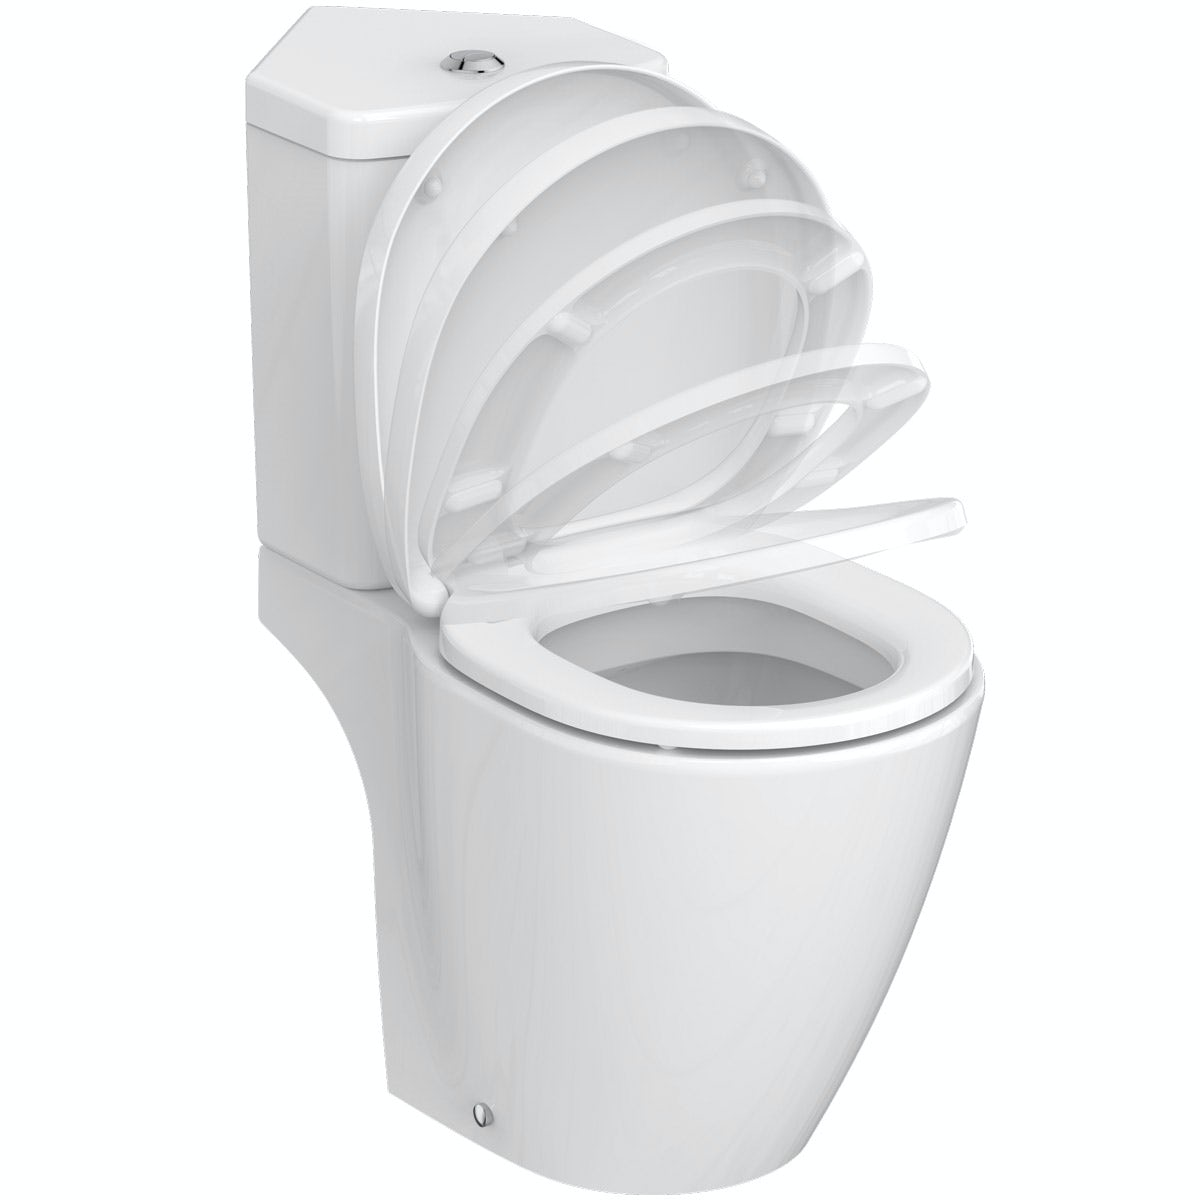 Ideal Standard Concept Space compact corner close coupled toilet with soft close seat